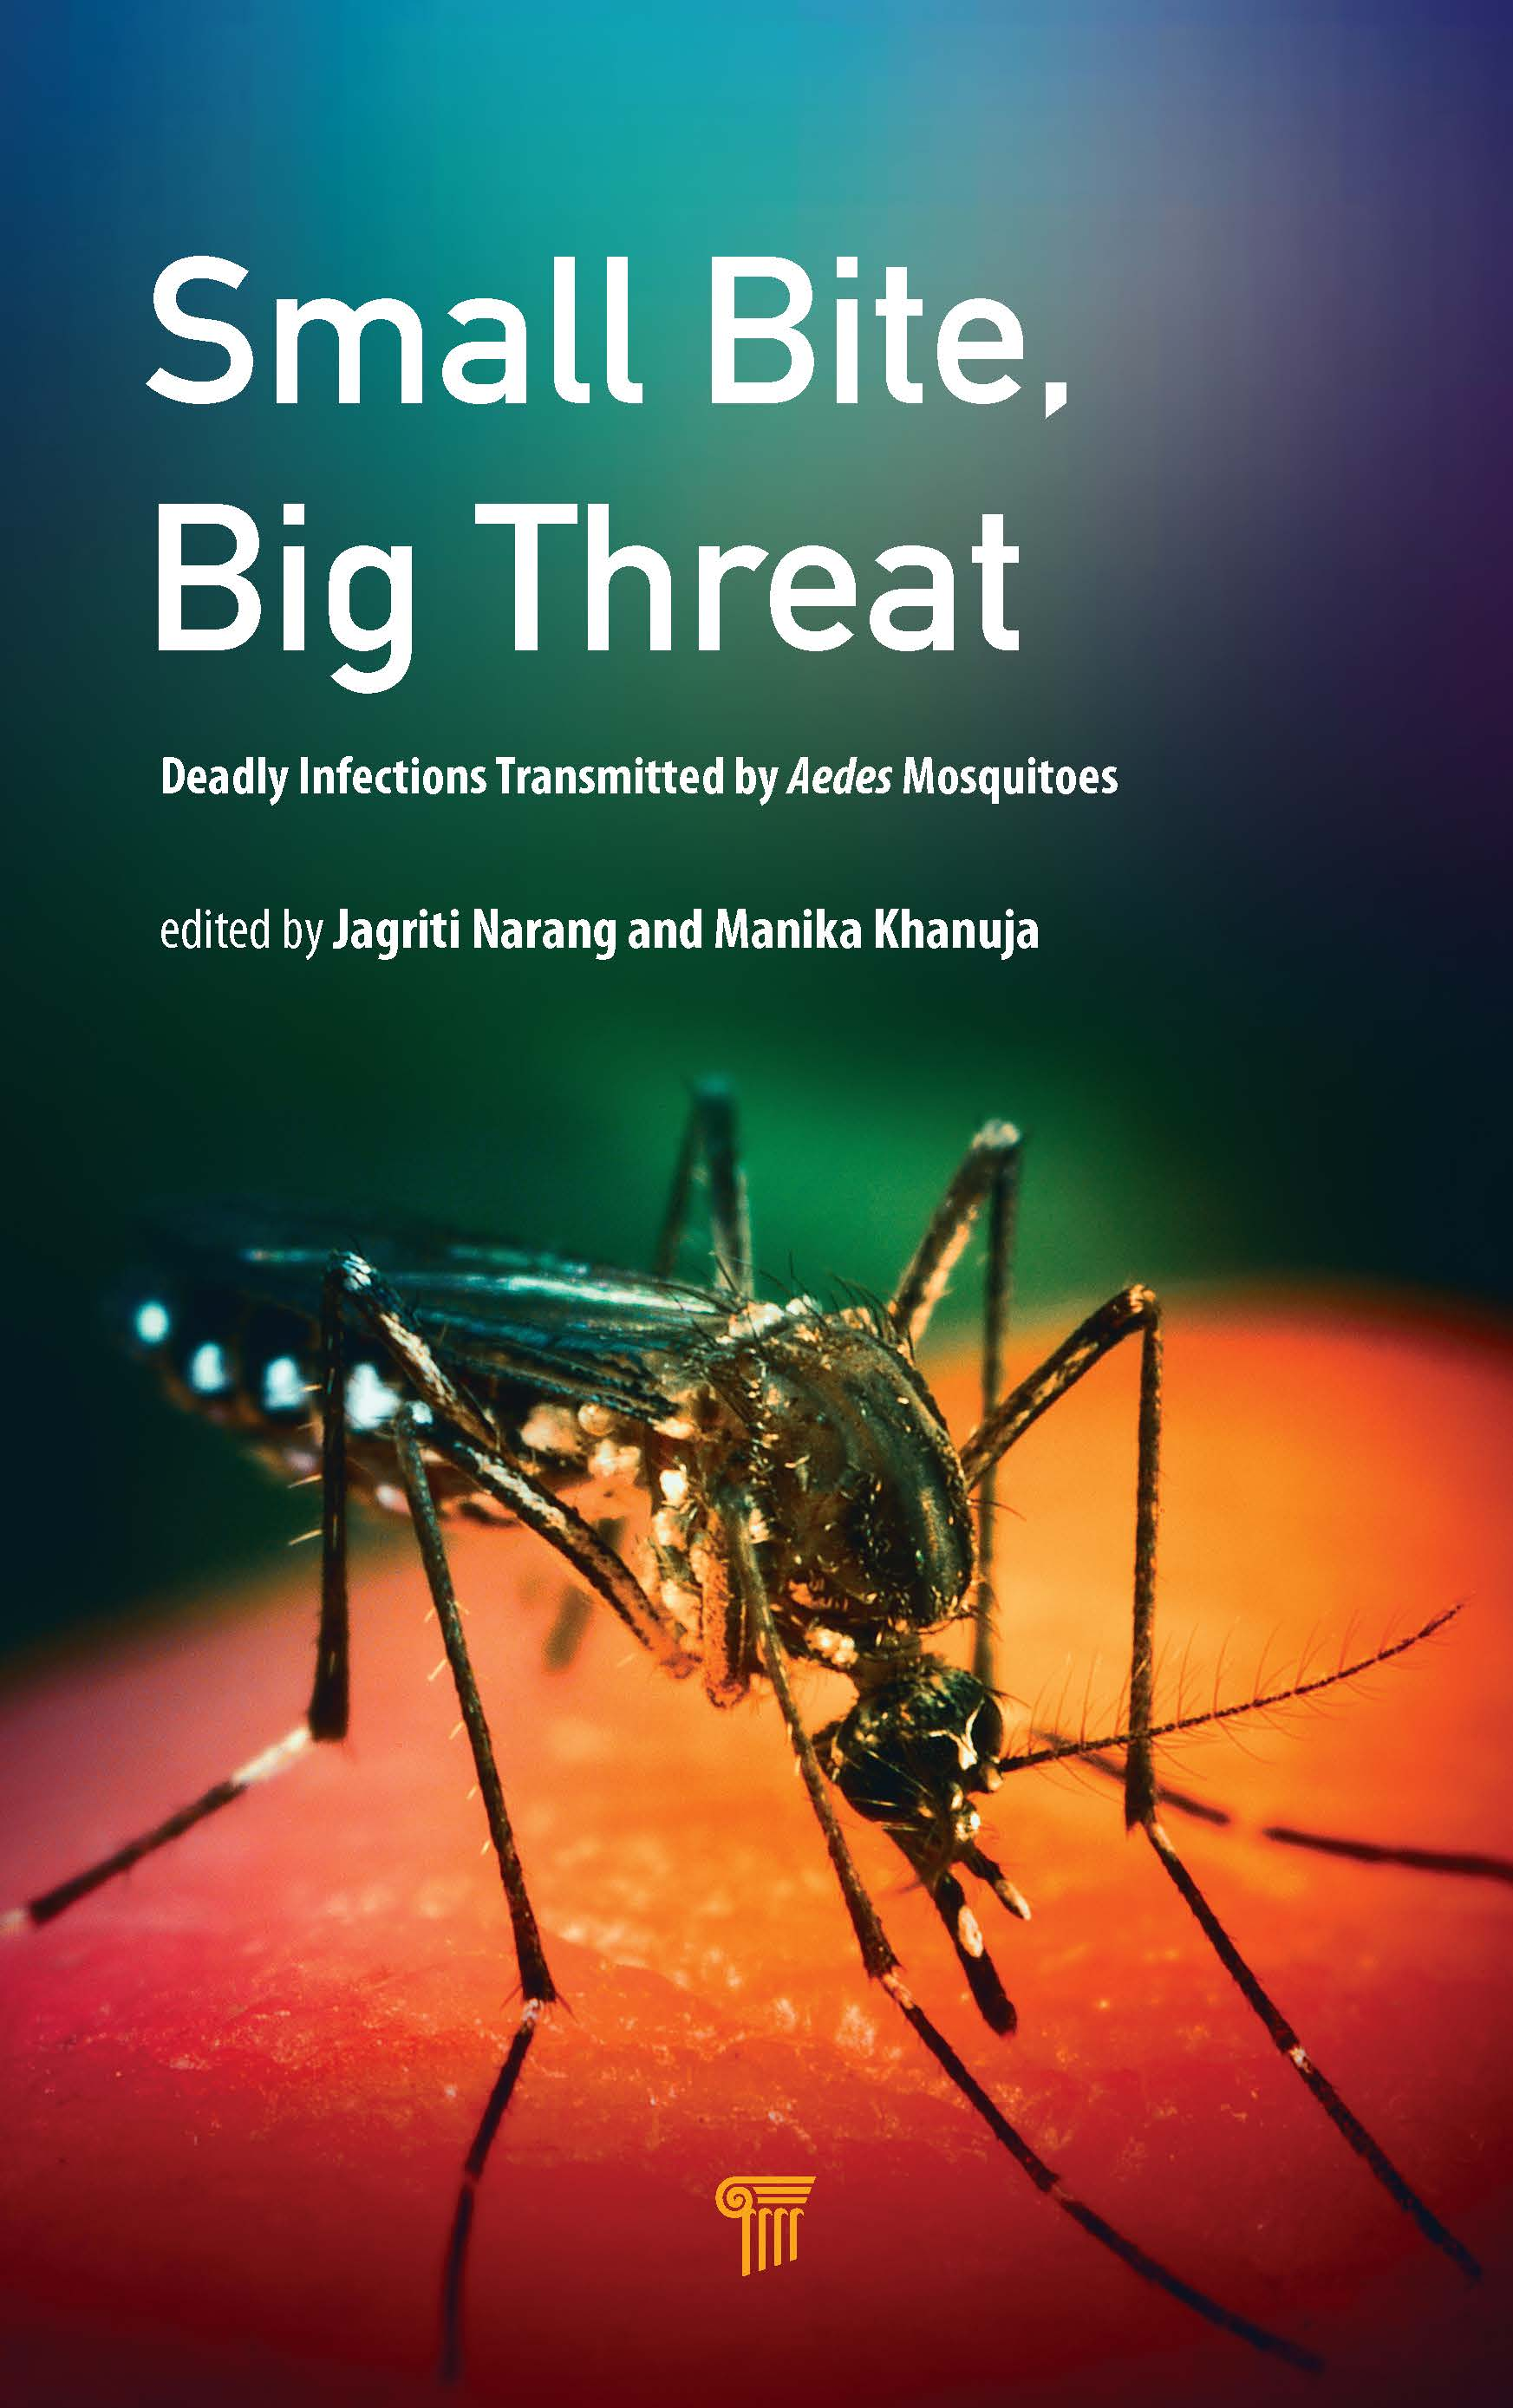 Small Bite, Big Threat: Deadly Infections of the Aedes Aegypti book cover